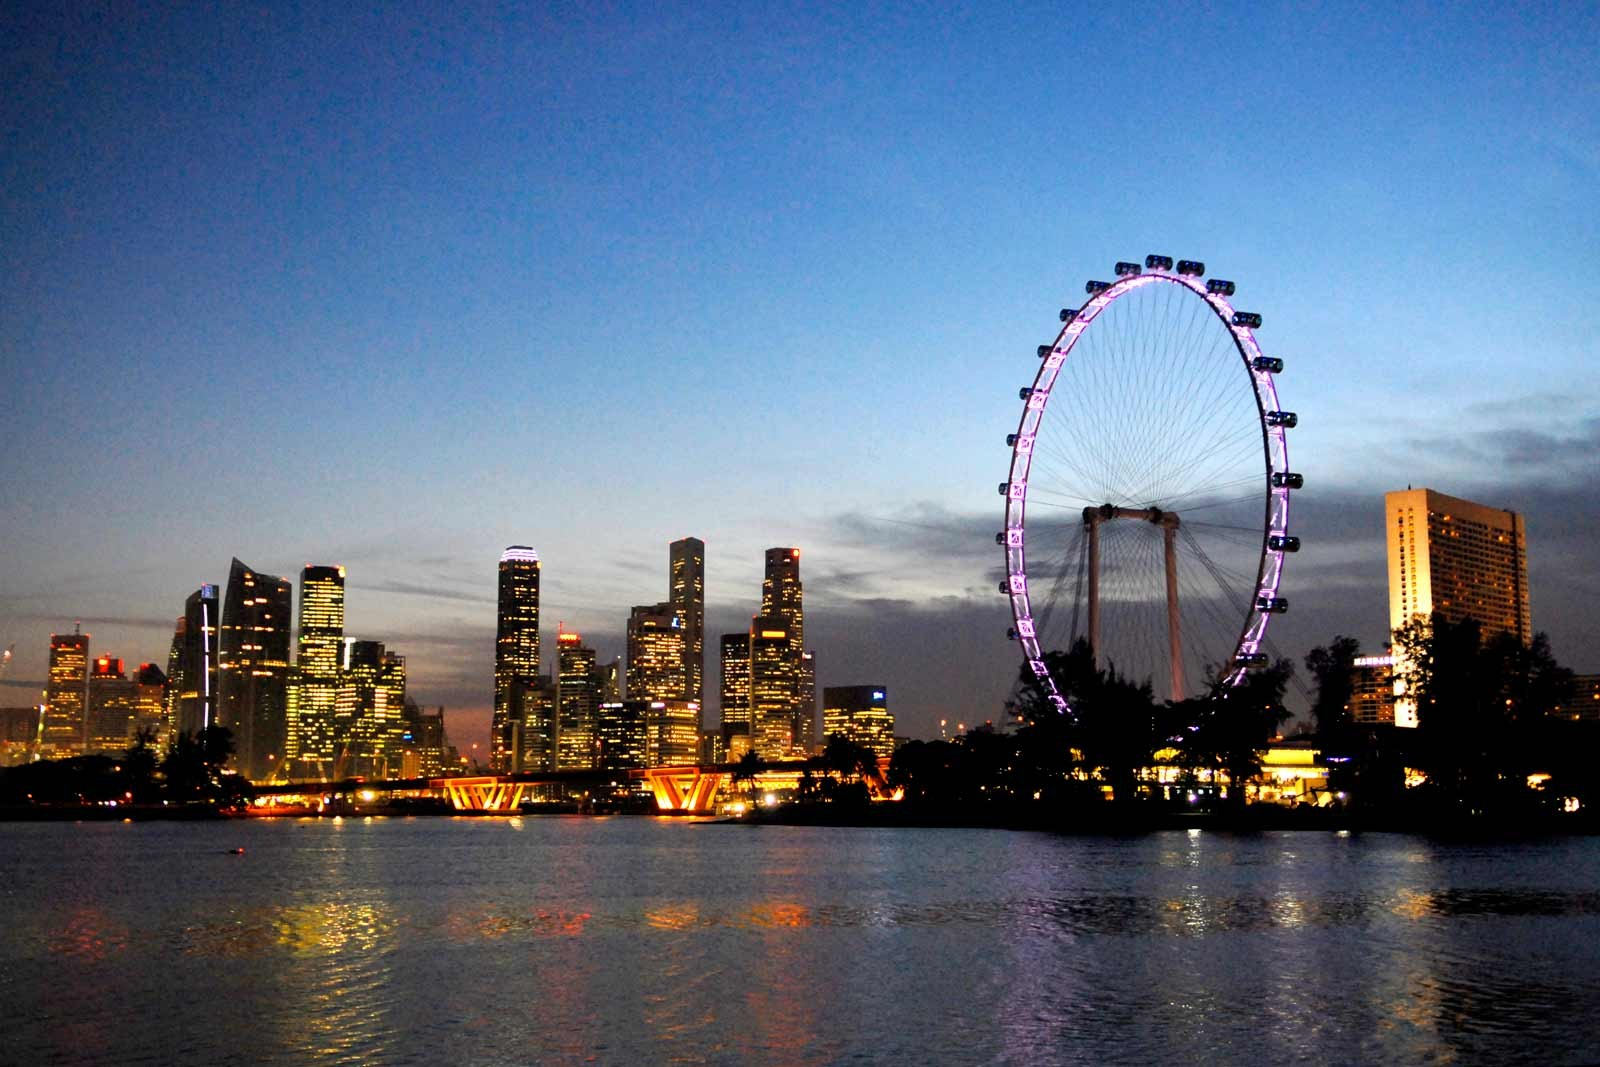 The Singapore Flyer & Skyline